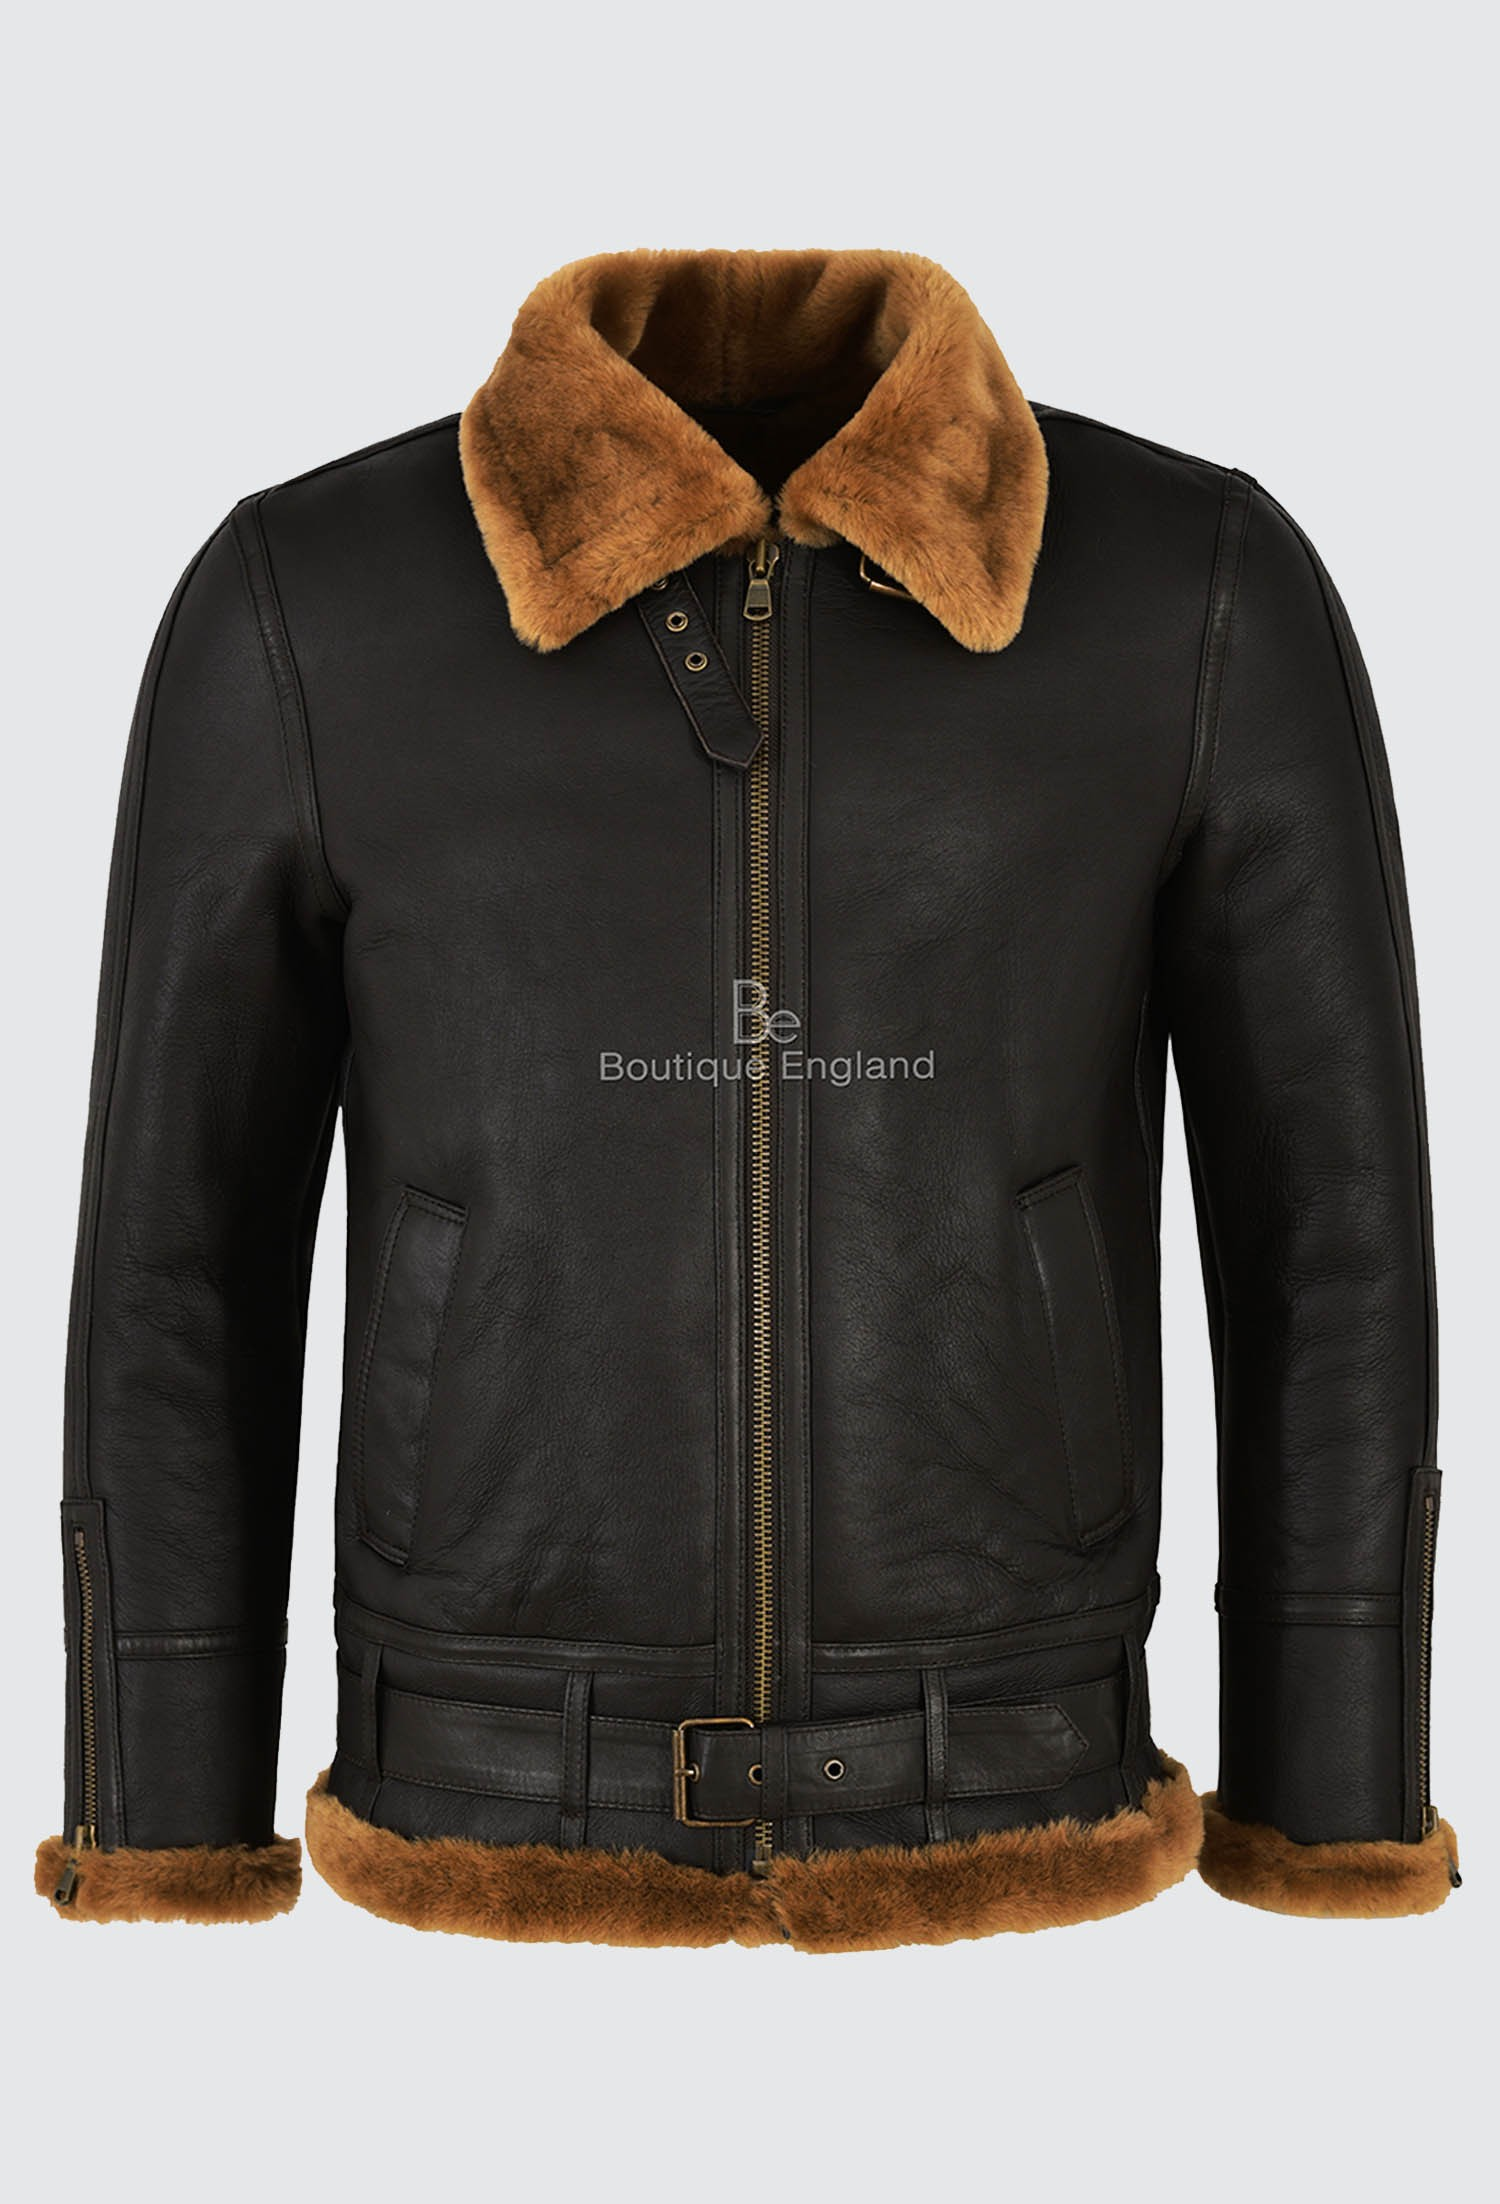 Smart Range Men's B3 Brown Ginger Fur Shearling Sheepskin Leather Jacket Bomber RAF NV-47